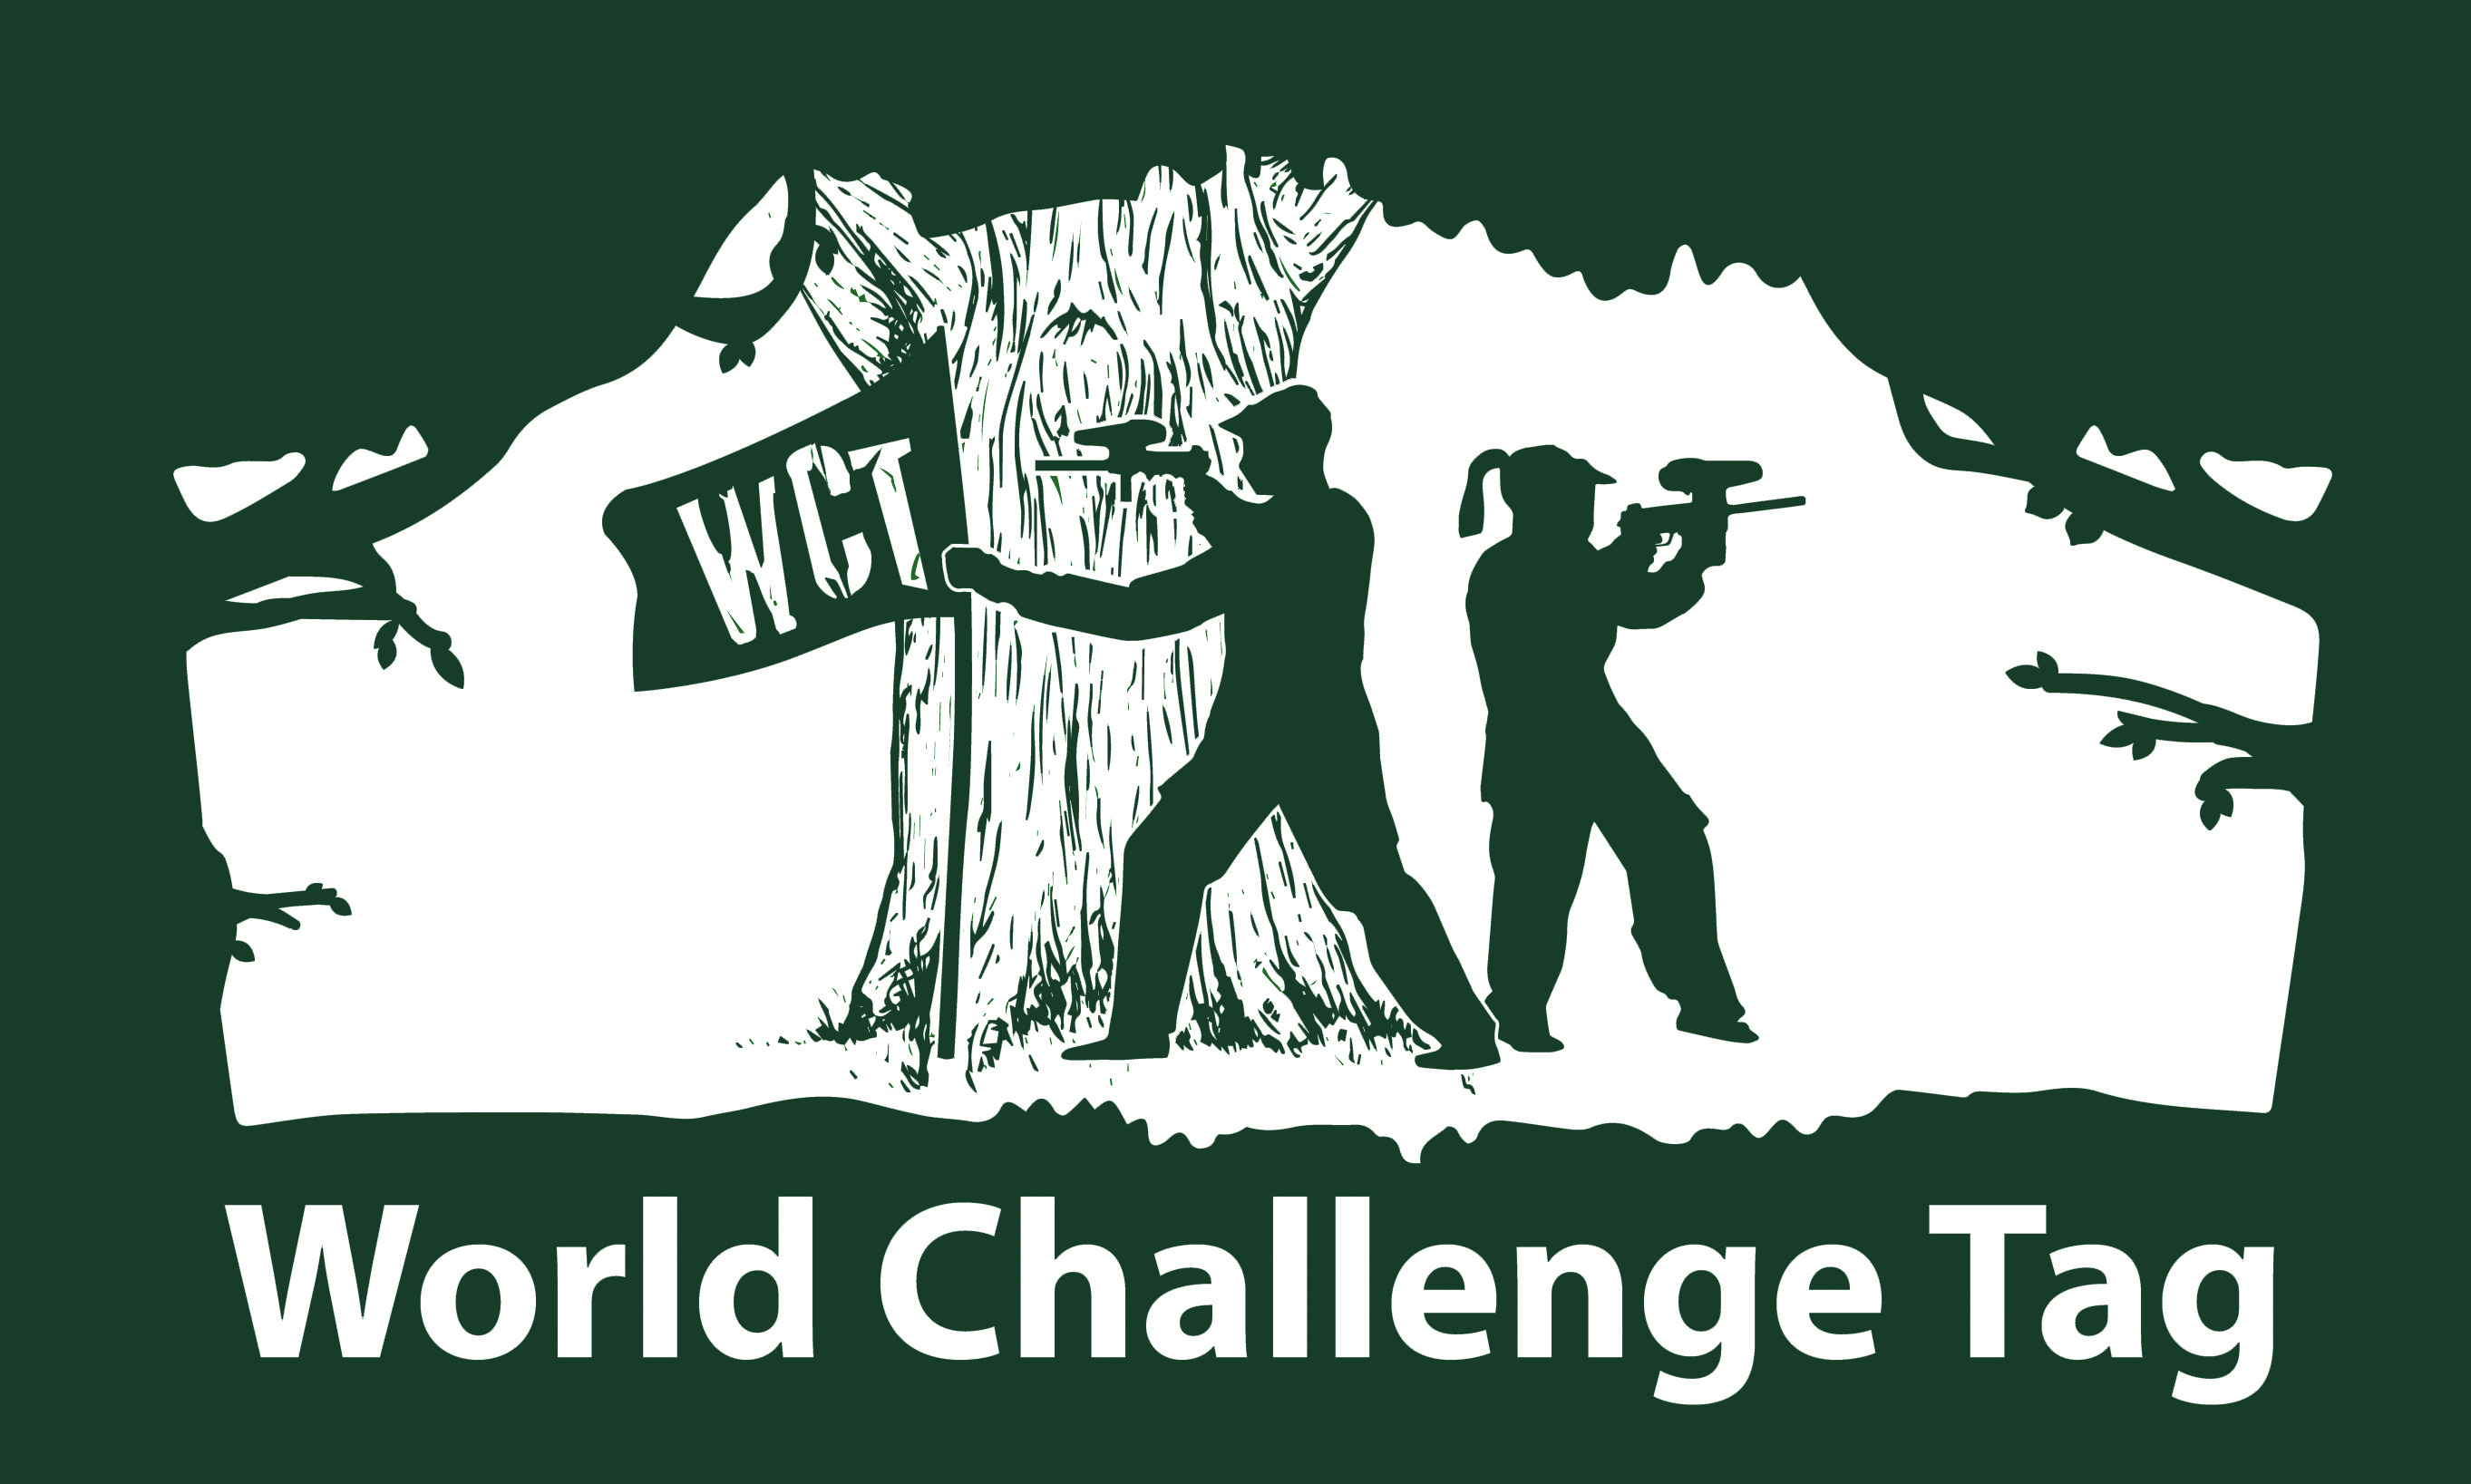 World Challenge Tag established 1985